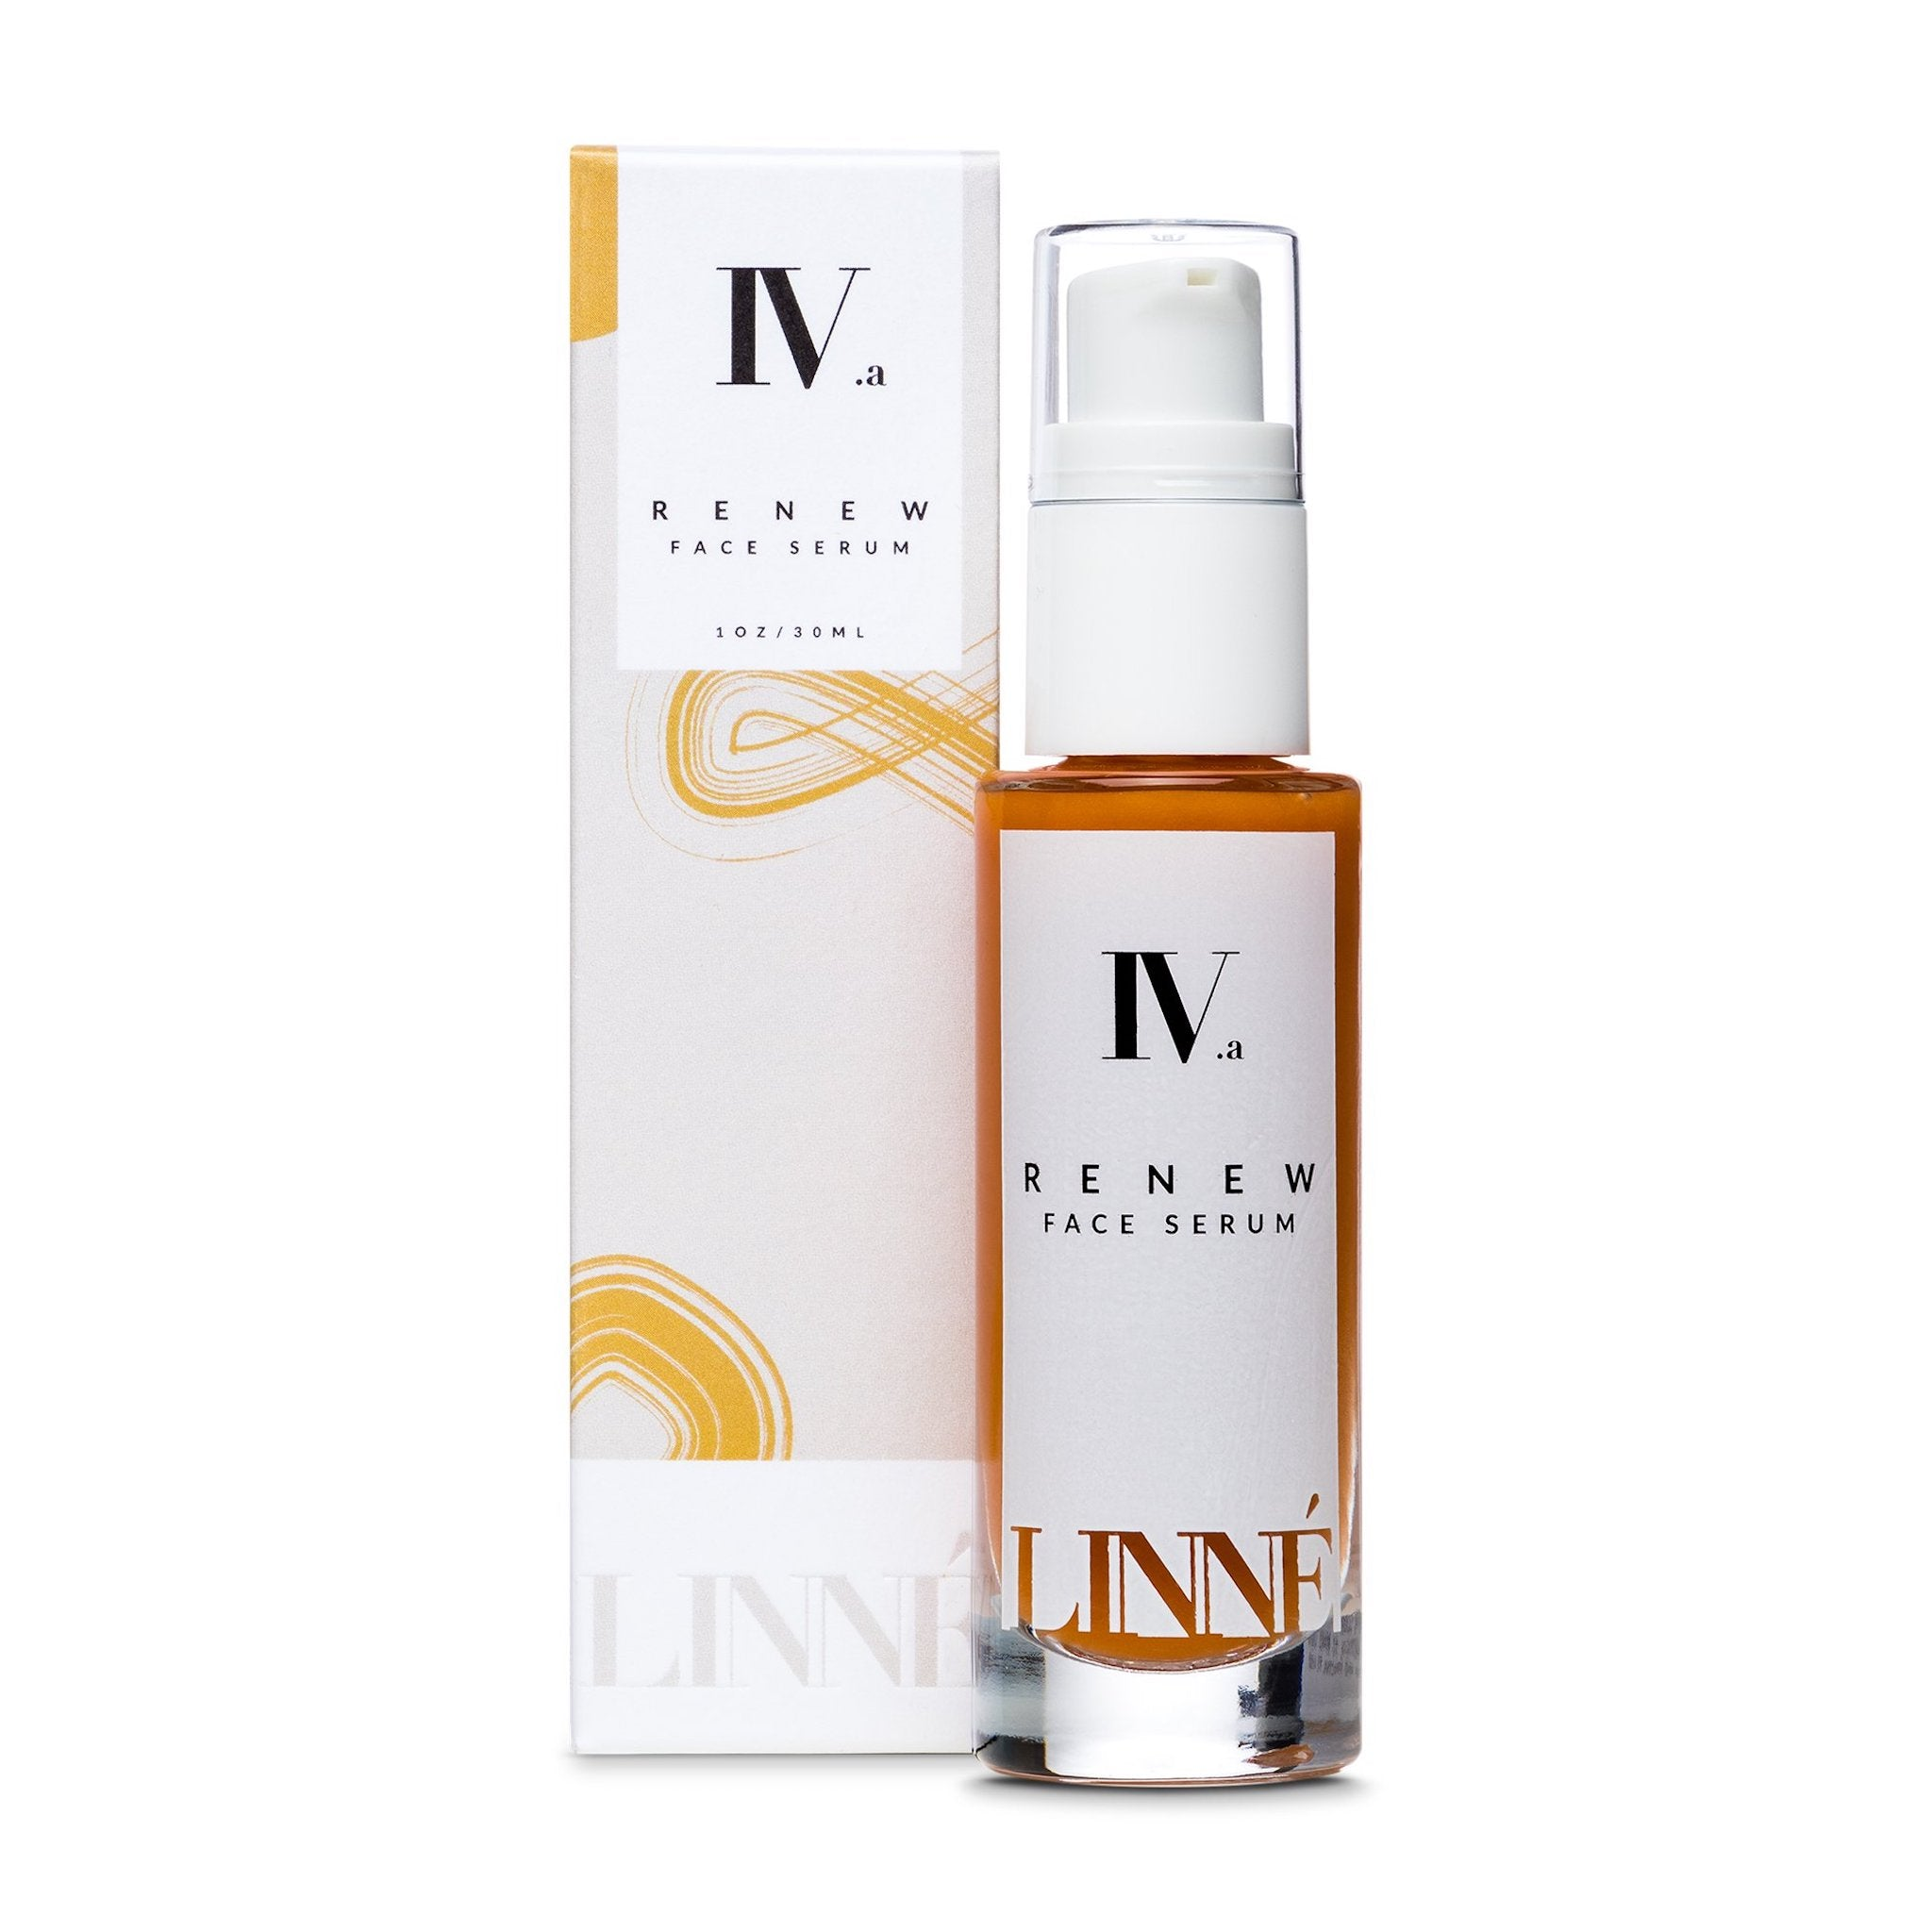 LINNÉ - RENEW Face Serum